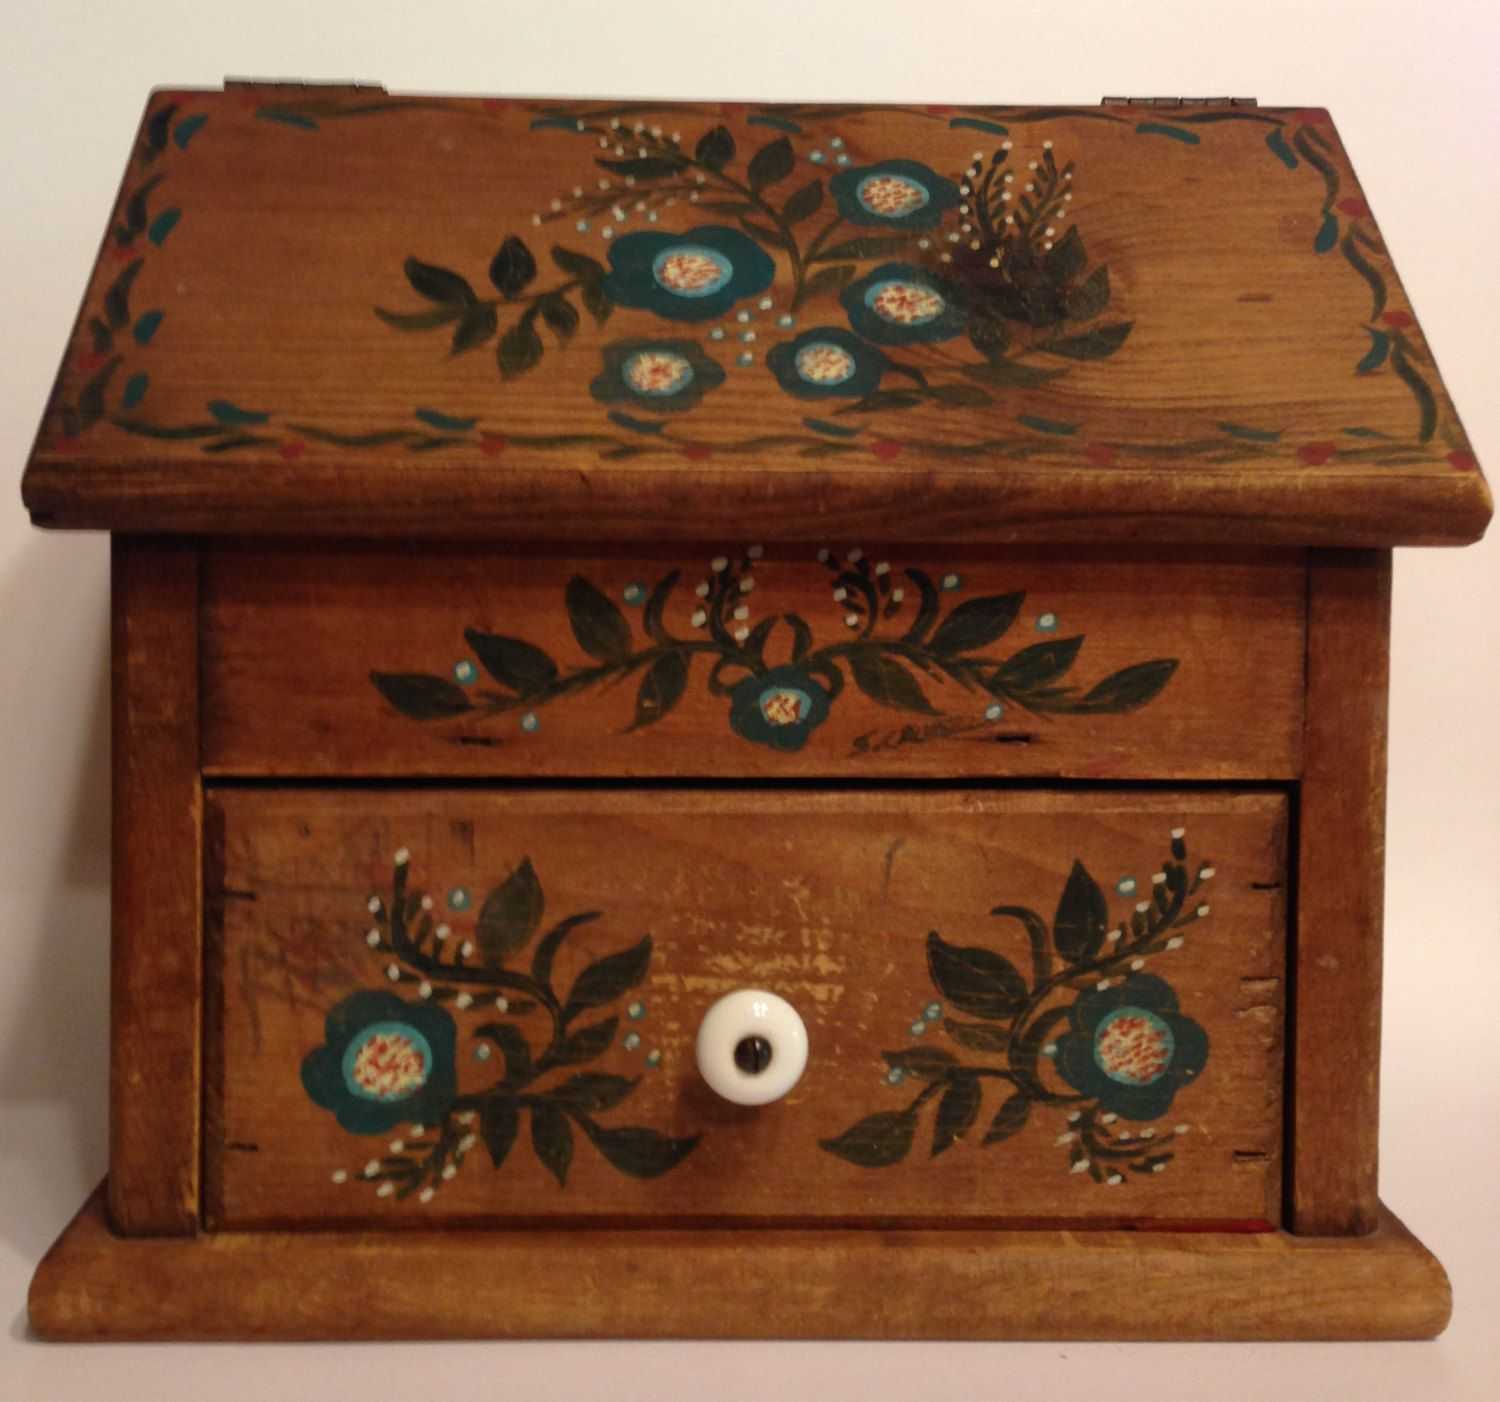 Primitive Wall Cabinets Primitive Wall Cabinet With Hand Painted Teal Penny Flowers And